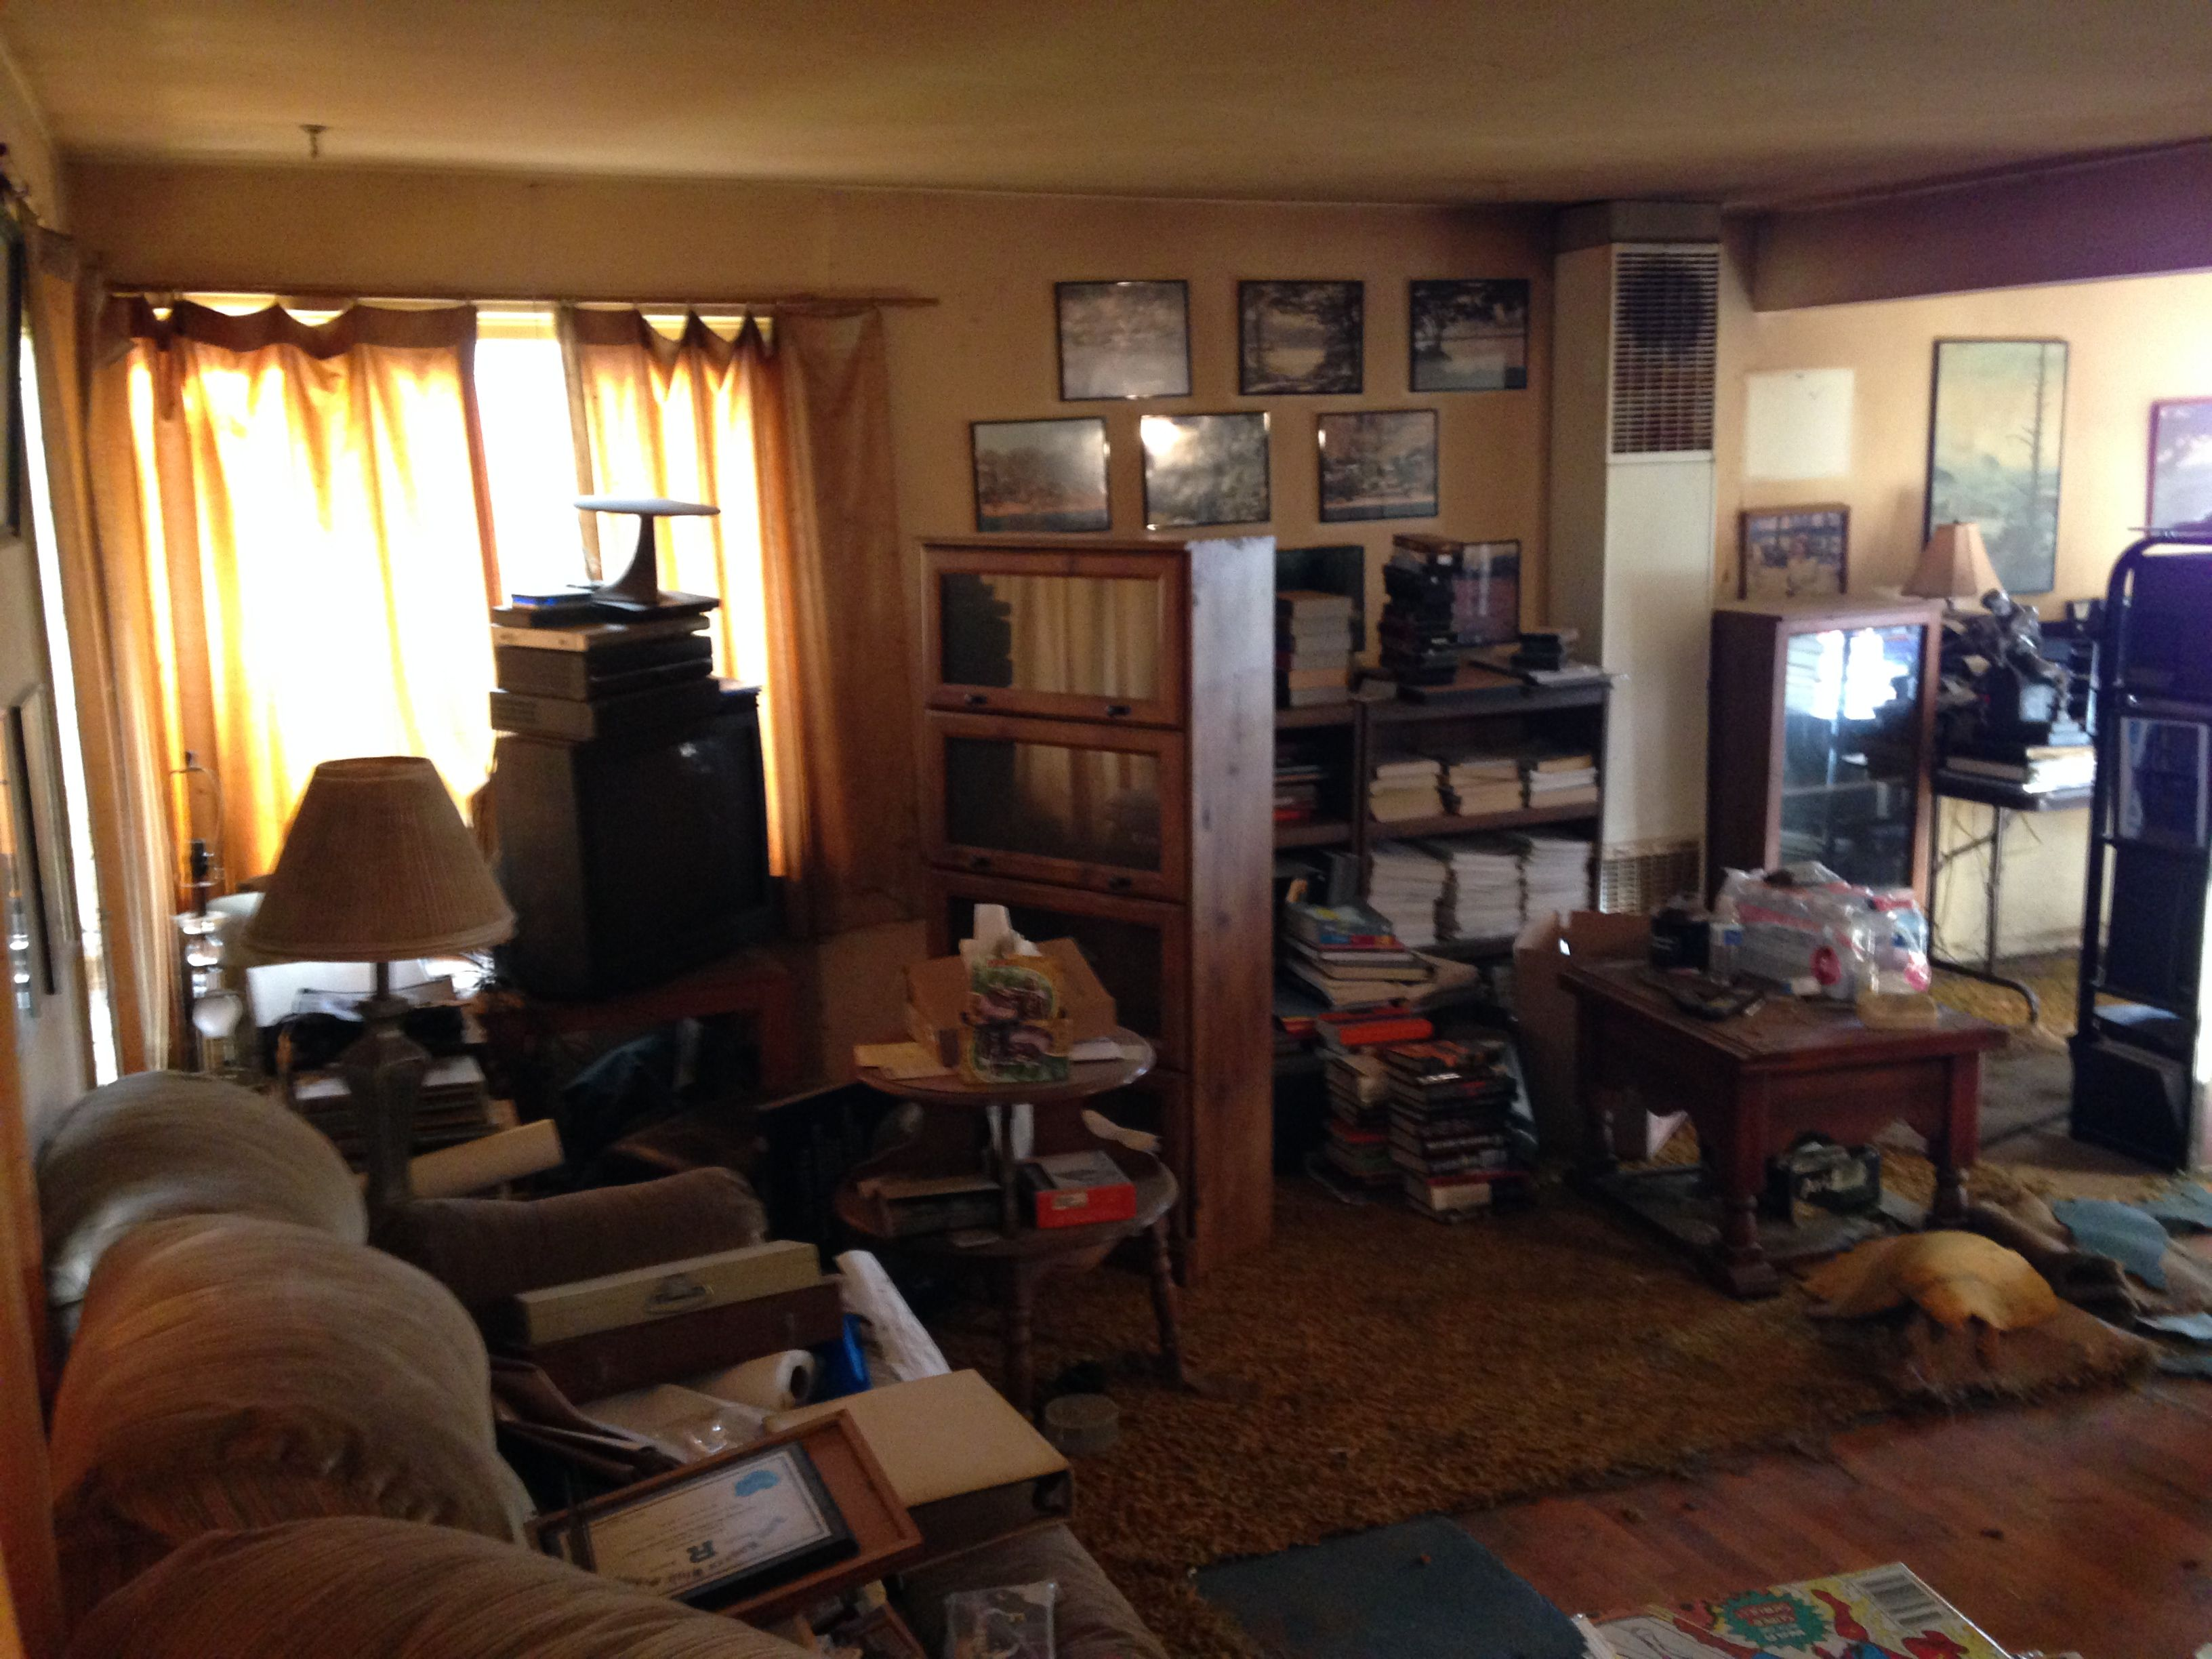 Image result for cluttered living room | Care Free ...